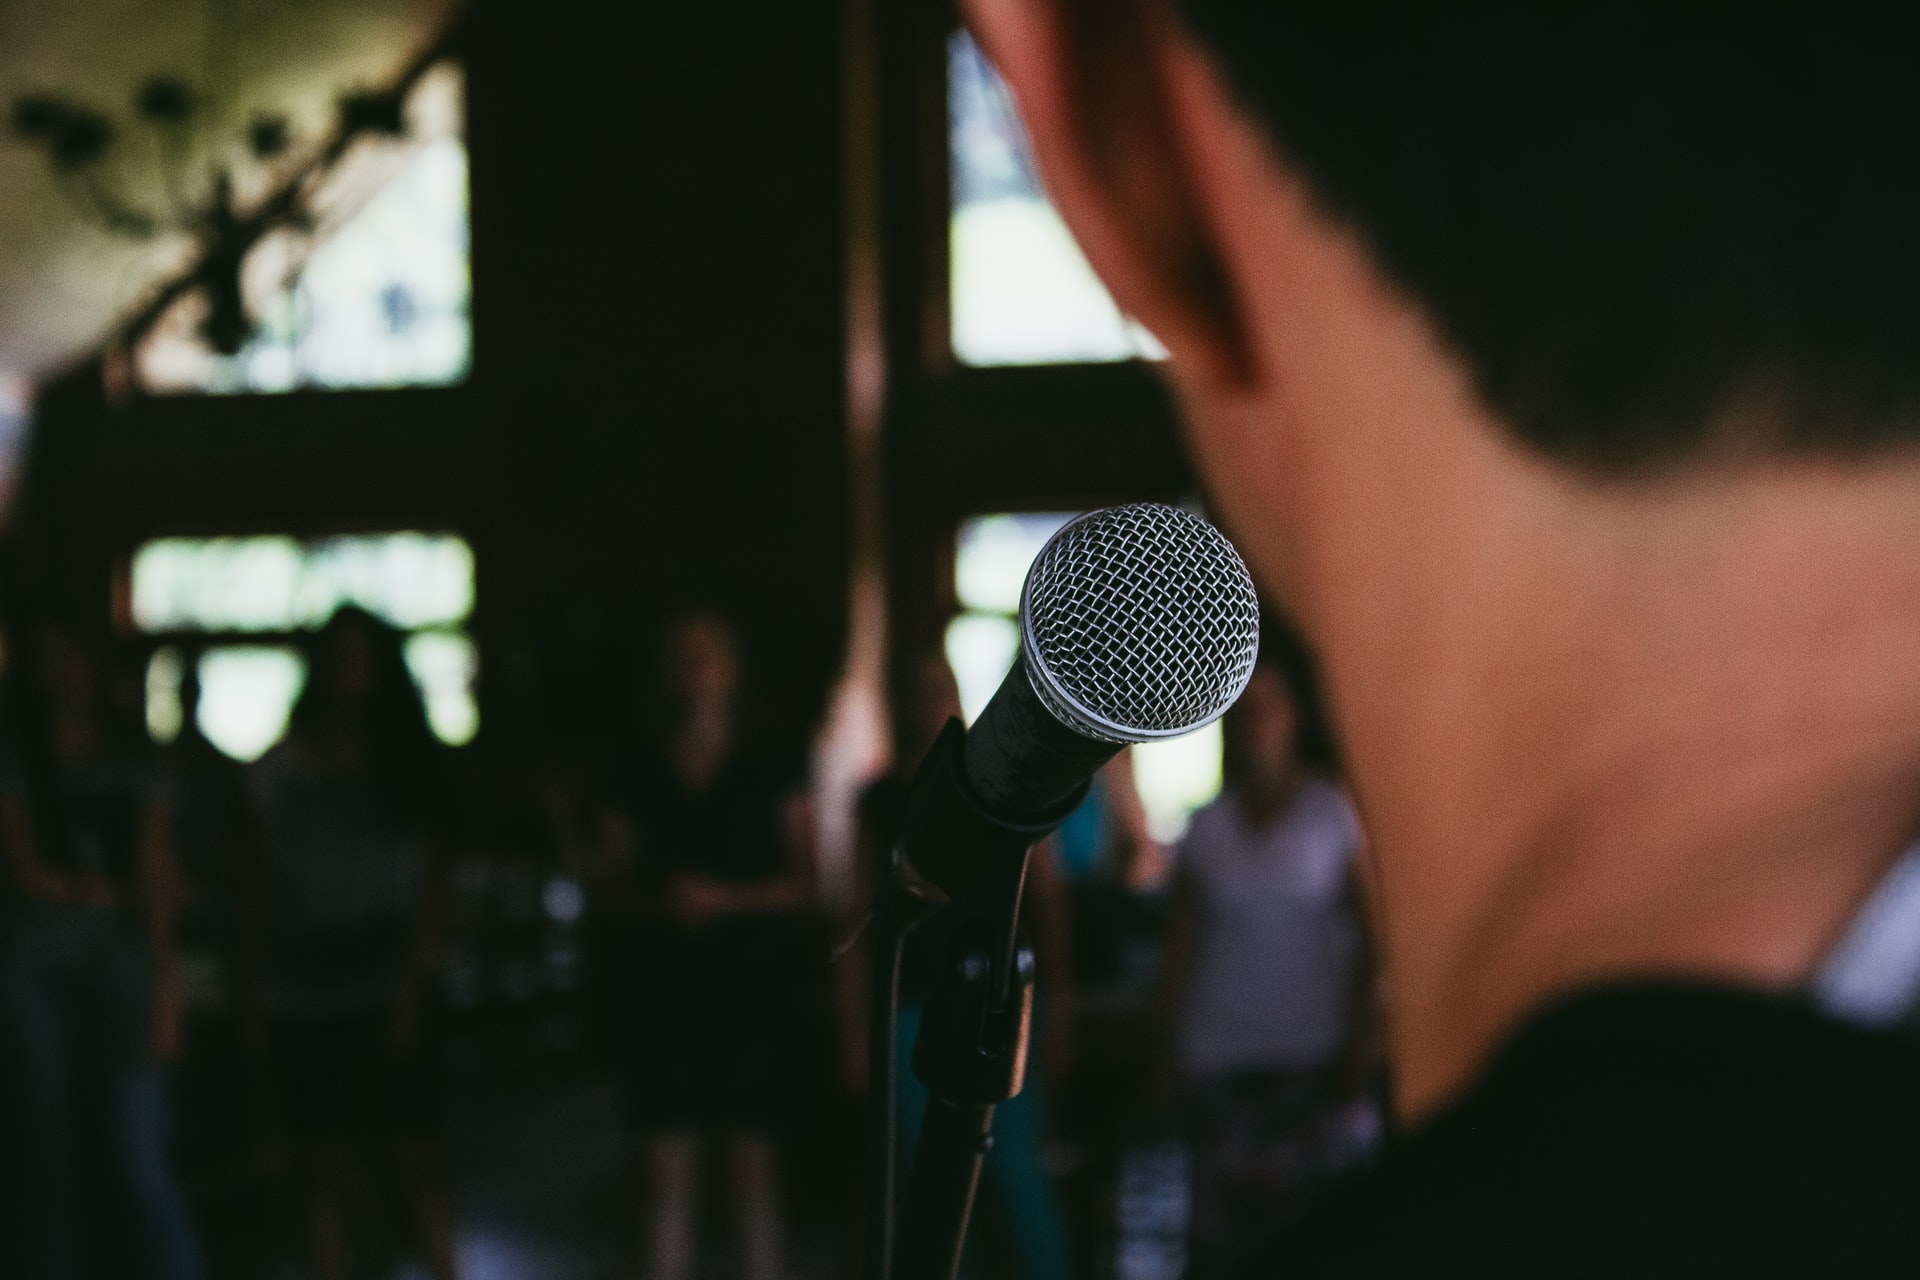 How to Stop Your Voice From Shaking When Public Speaking